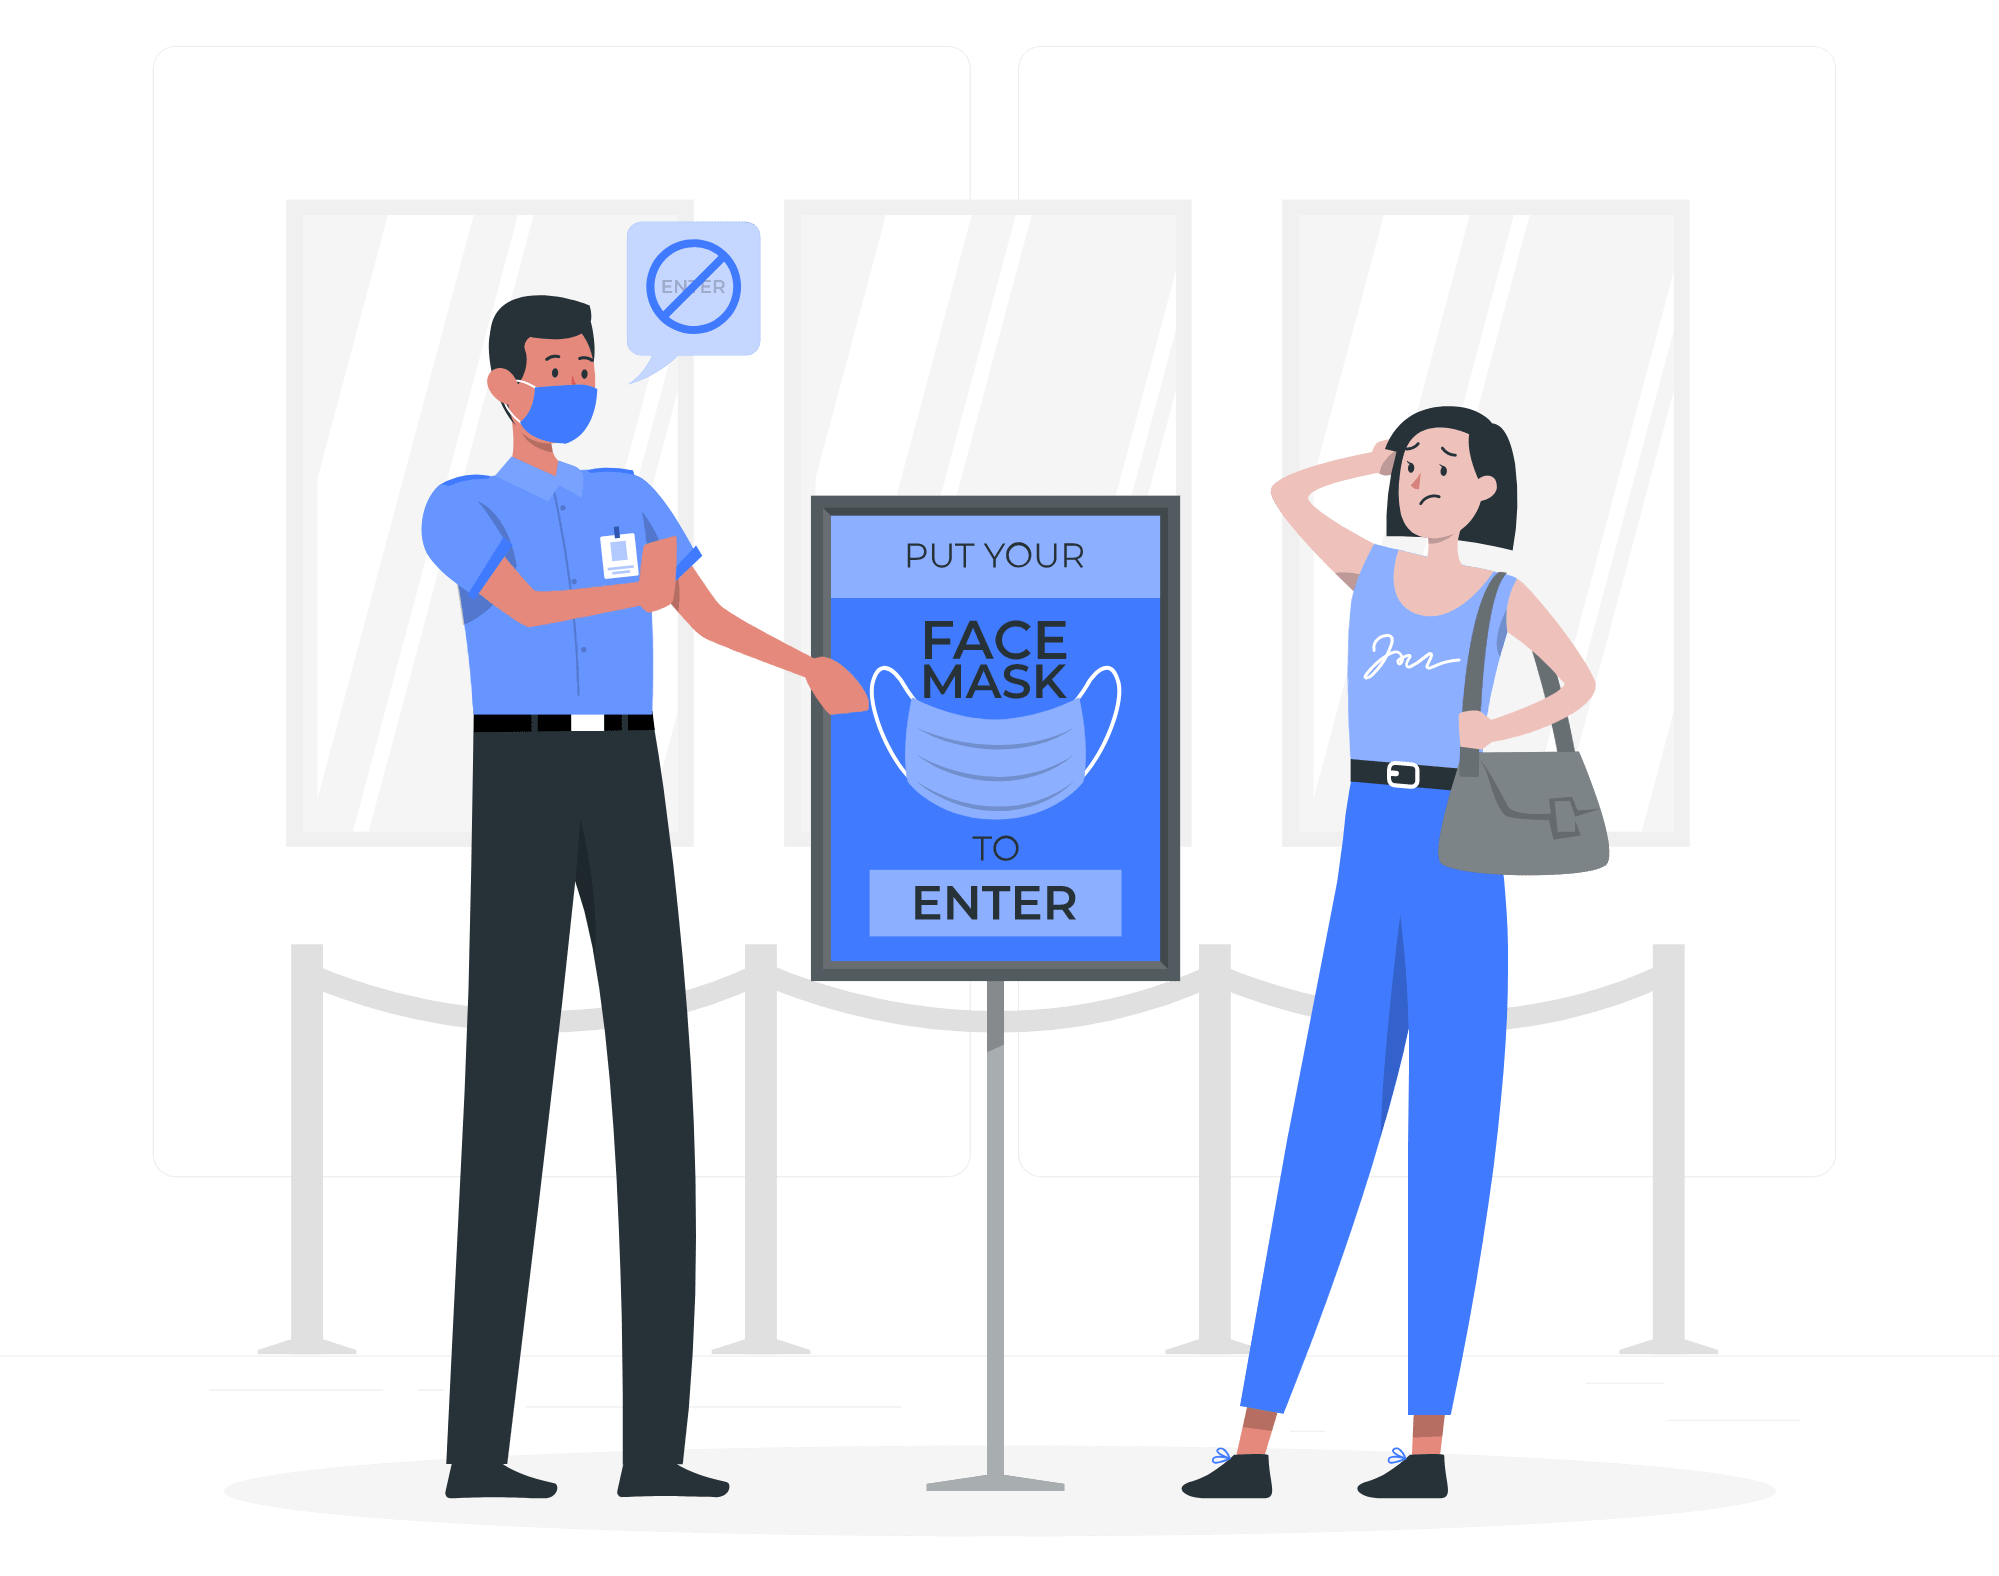 future of small business: business will see a shift towards digitalization and increased adoption of safety norms to ensure smooth customer experience